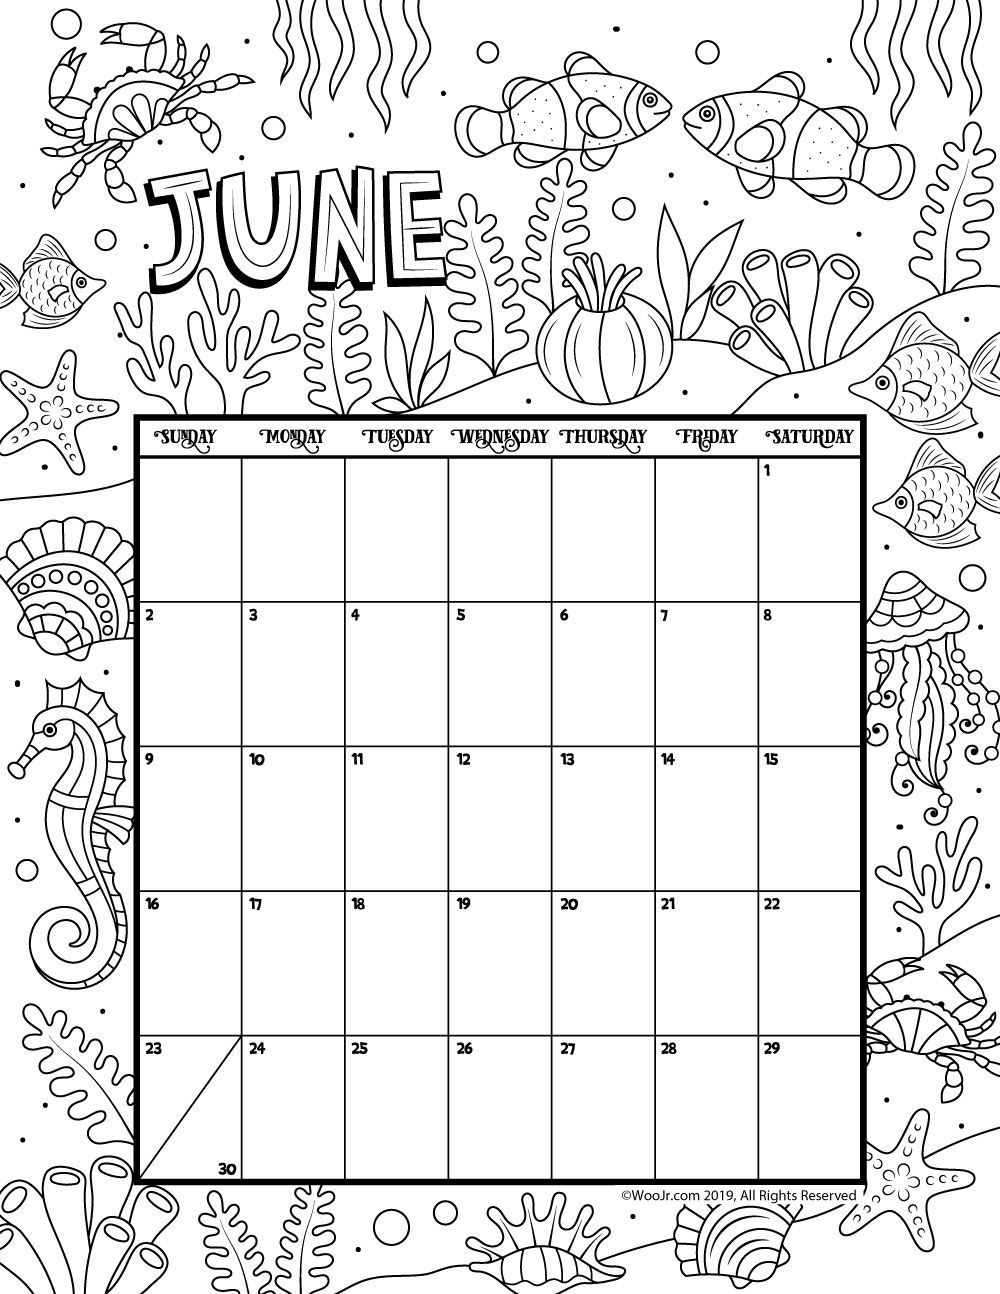 Free Printable Adult October Calendar 2019 Coloring Sheets with Free Printable Adult October Calendar 2019 Coloring Sheets